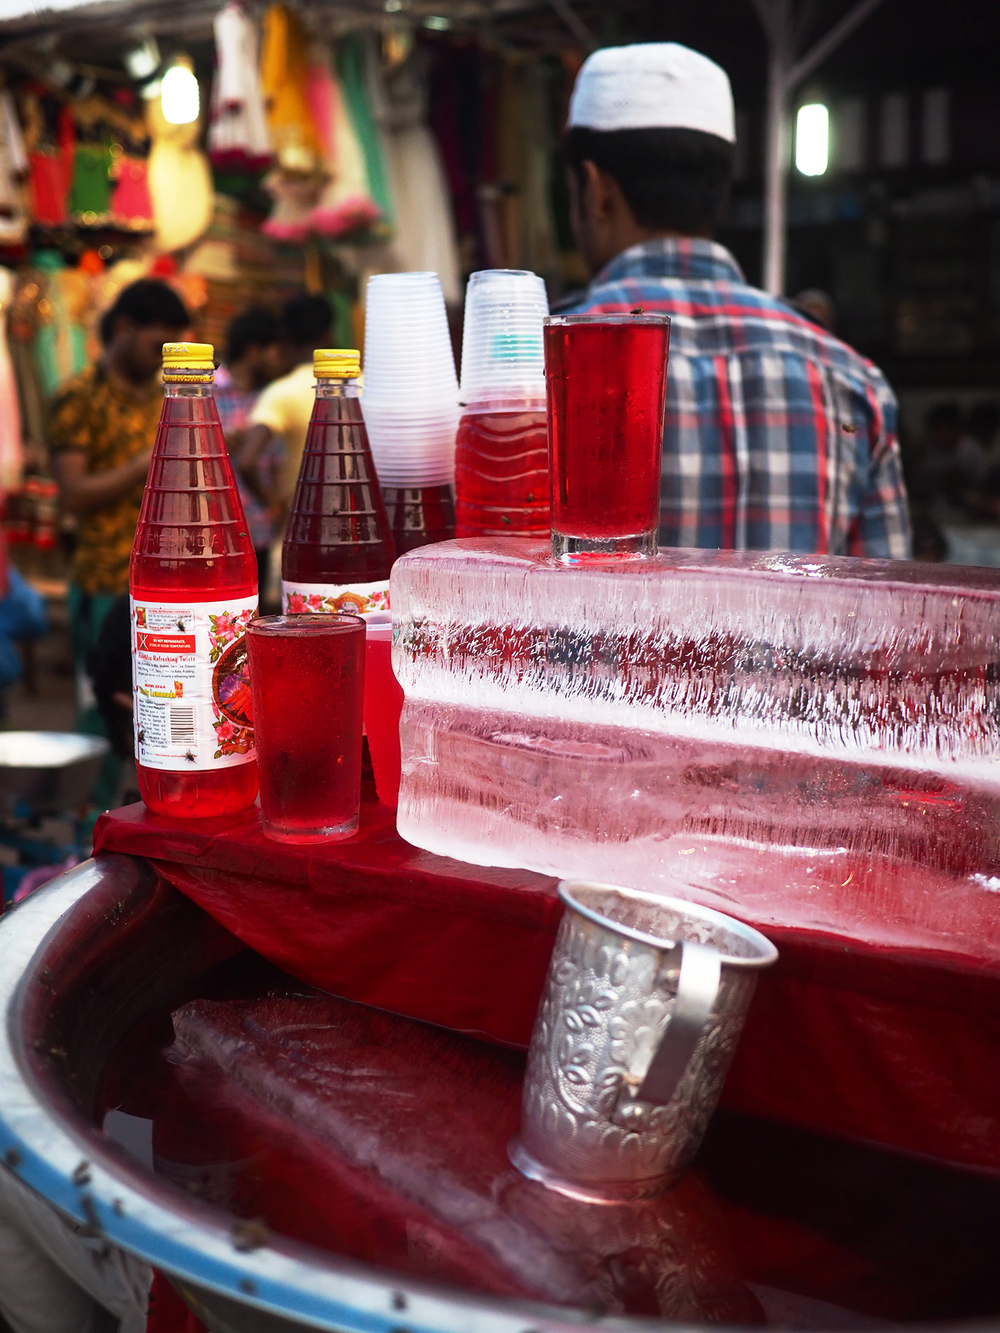 Rooh Afza,a cooling drink made with herbs and flowers, is popular in the market.